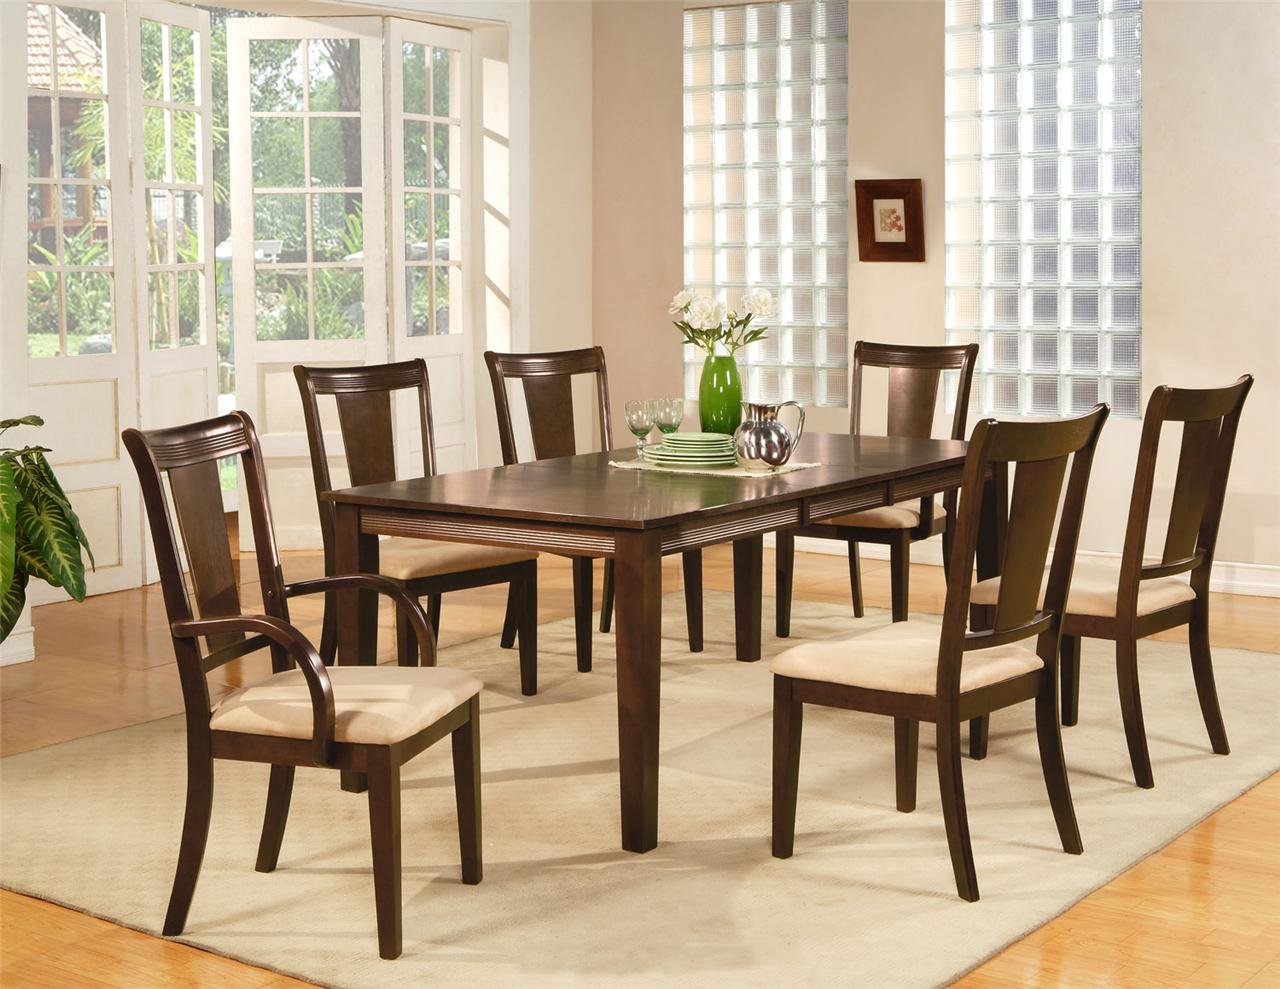 Setting Dining Room Table: 9PC RECTANGULAR DINING ROOM SET TABLE AND 8 CHAIRS